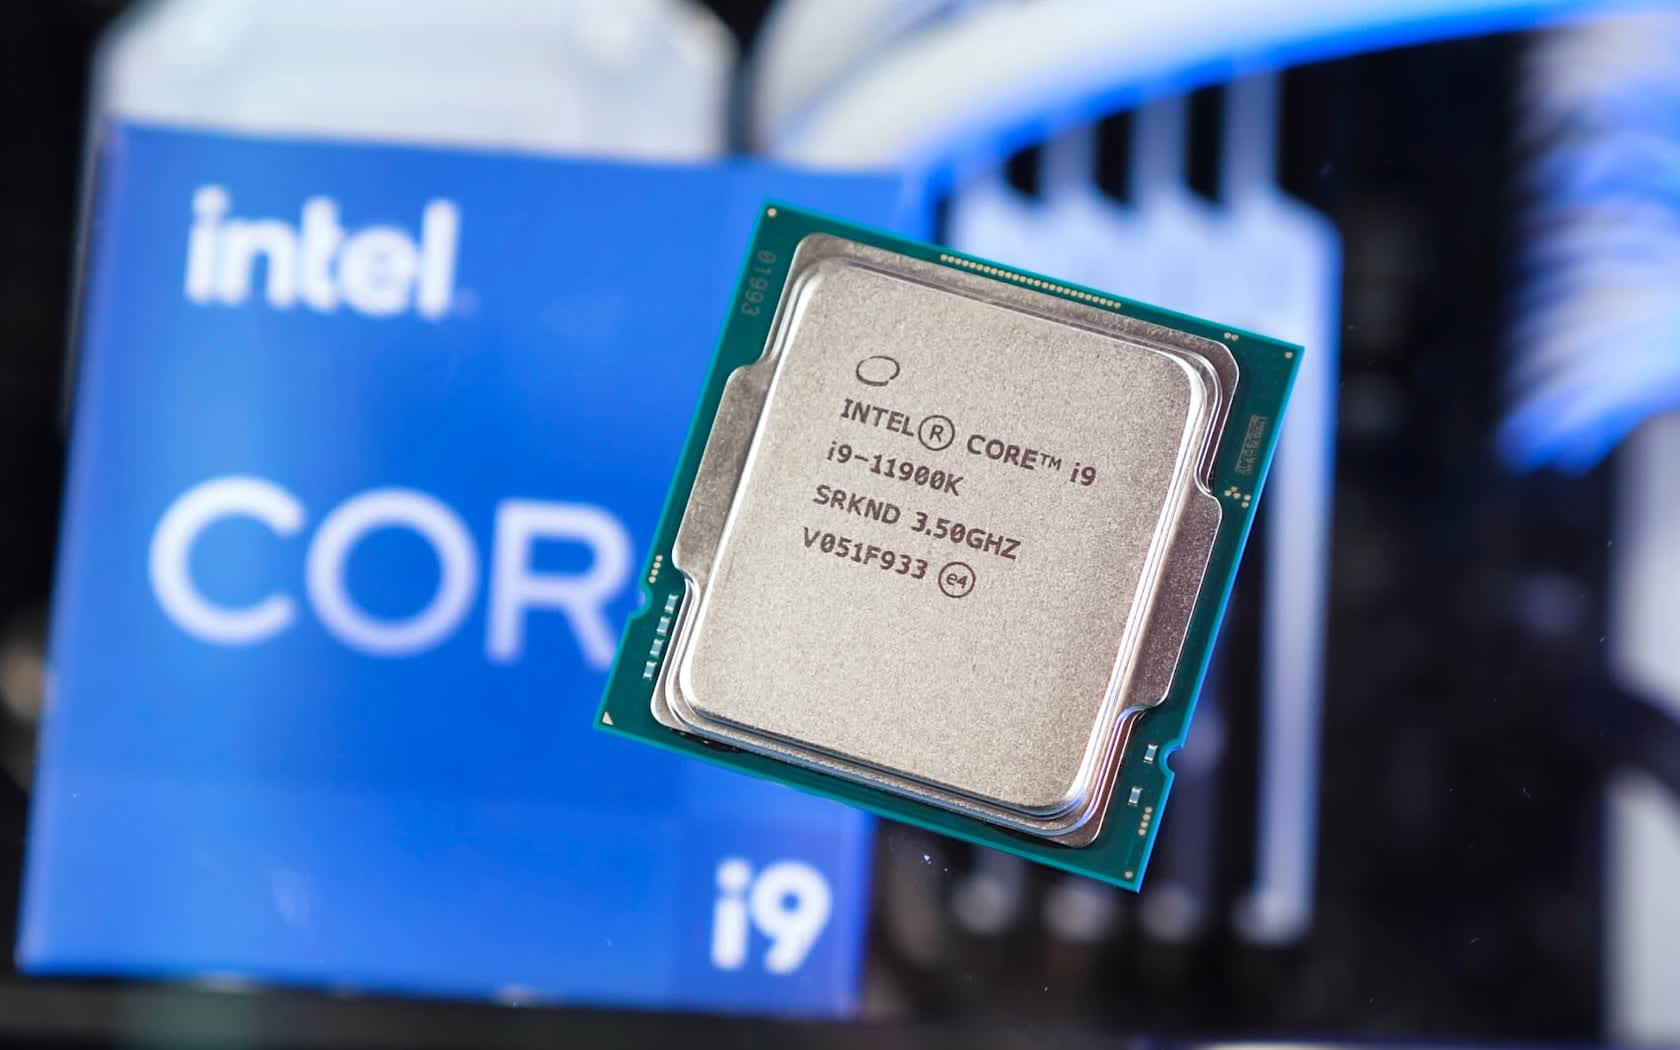 Intel Core i9-11900K Review: Not a Great Flagship CPU